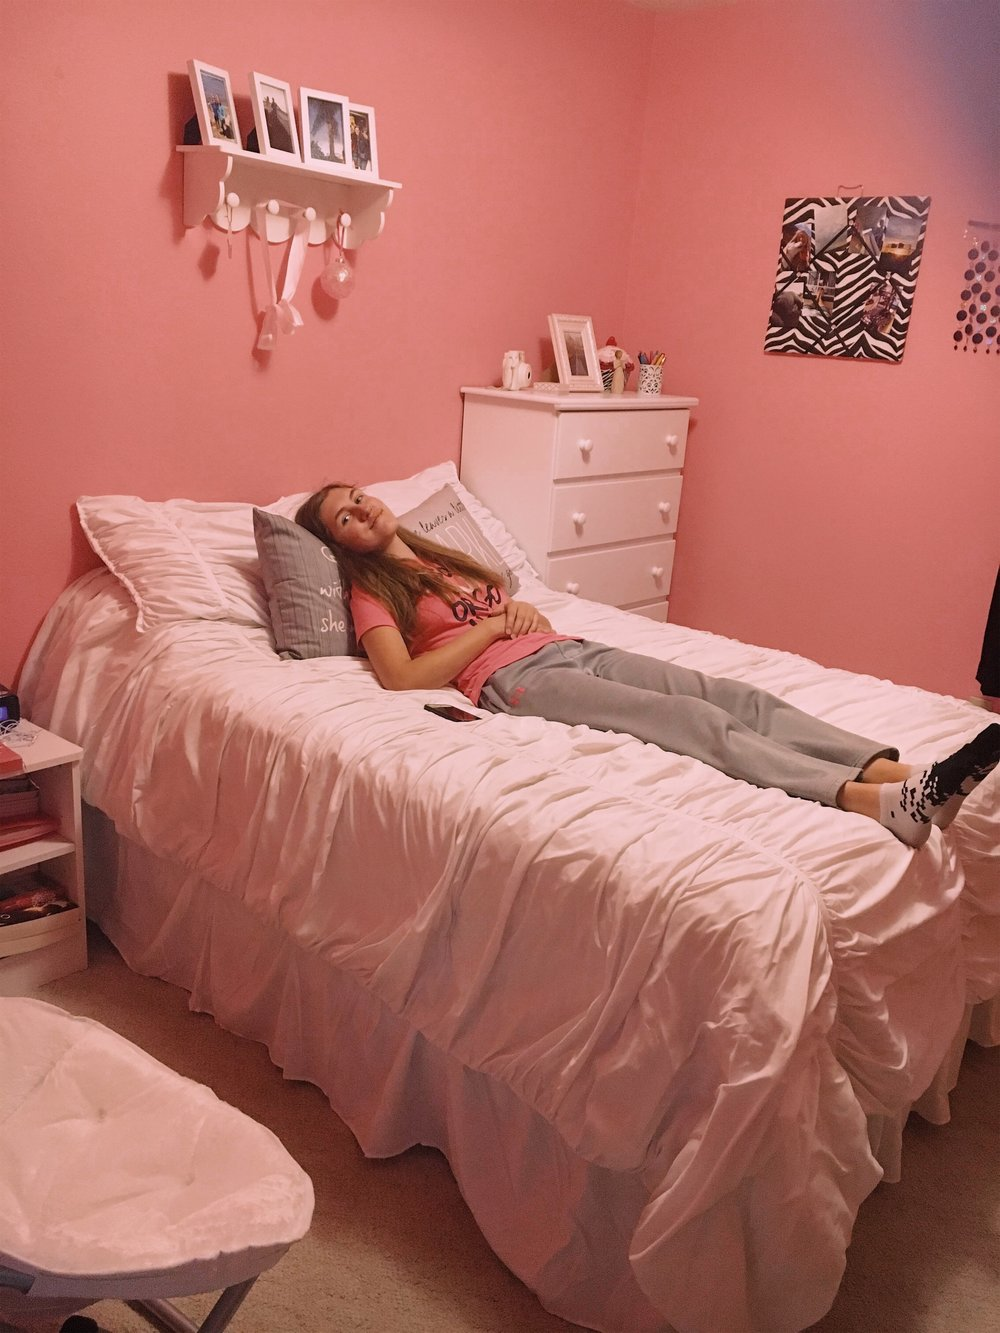 ashlee-pink-girly-teen-bedroom.jpg